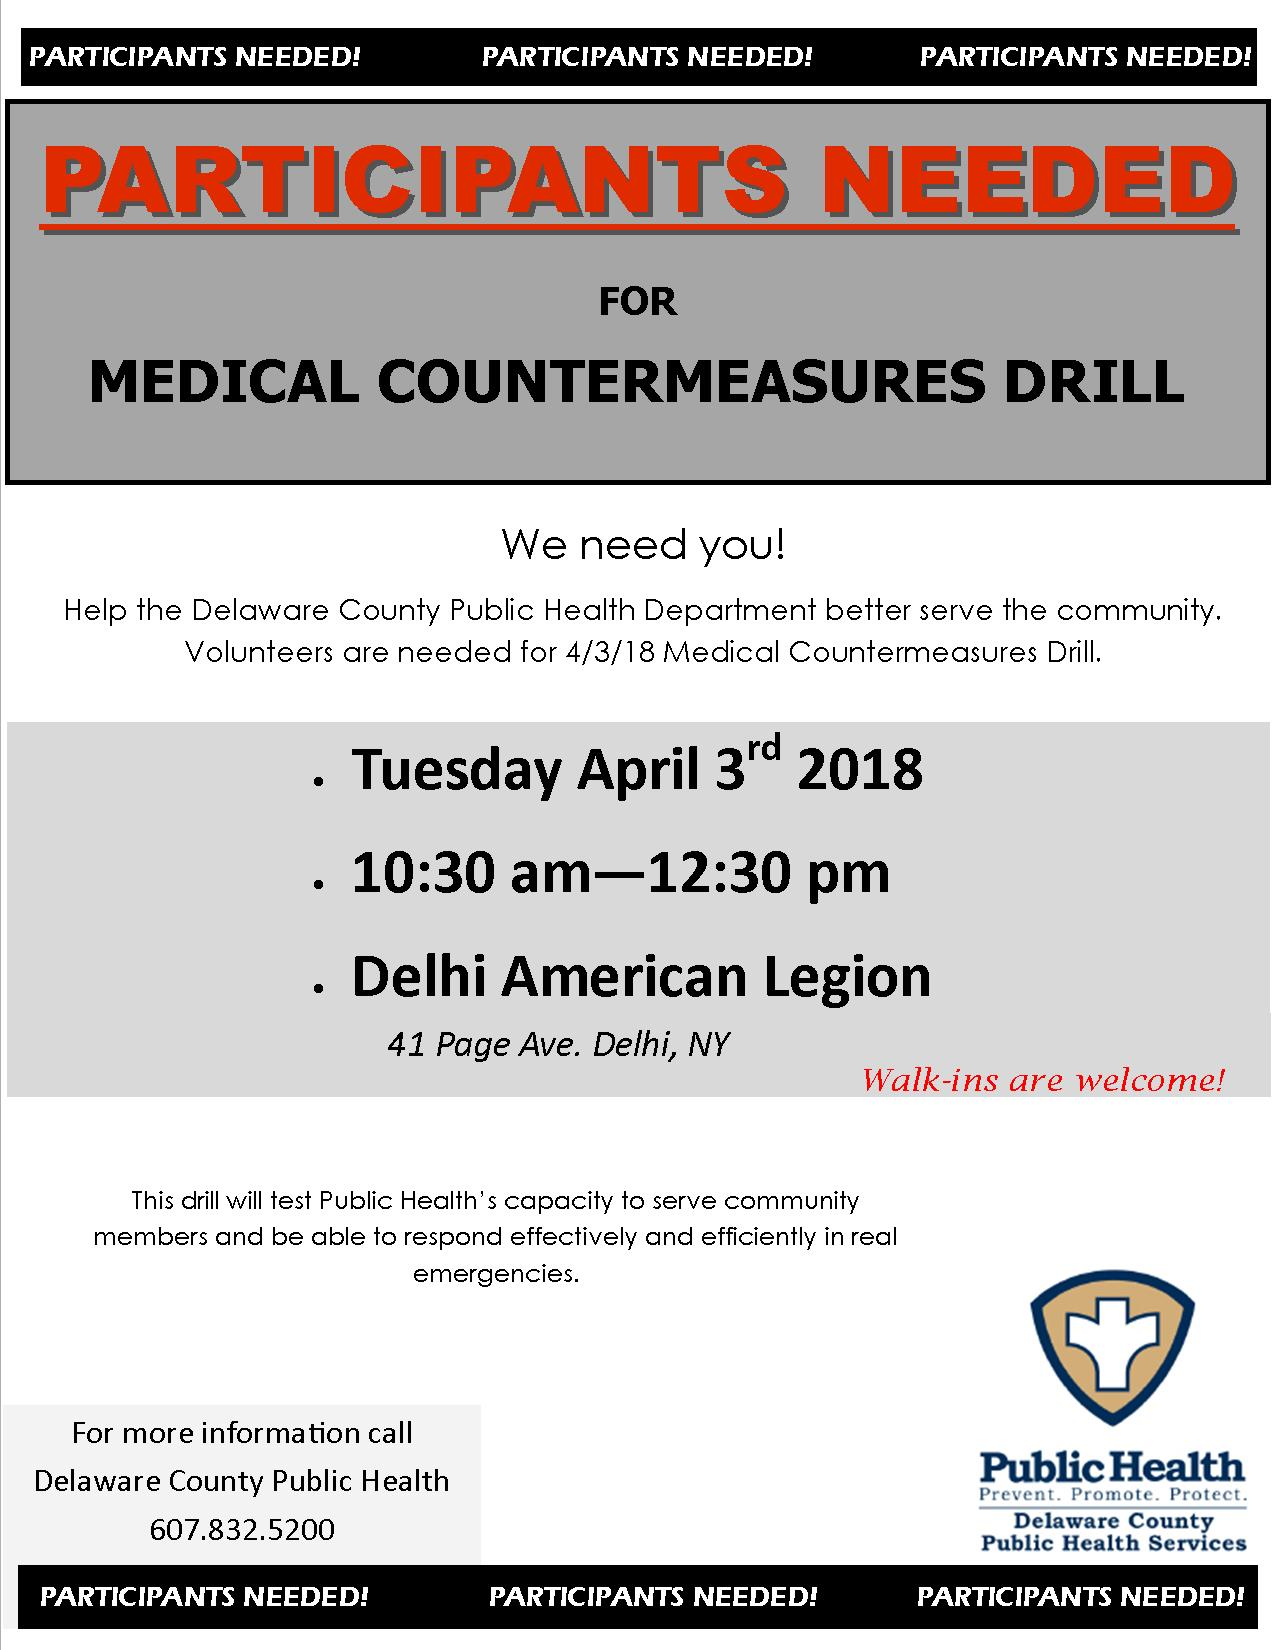 PARTICIPANTS NEEDED  FOR MEDICAL COUNTERMEASURES DRILL